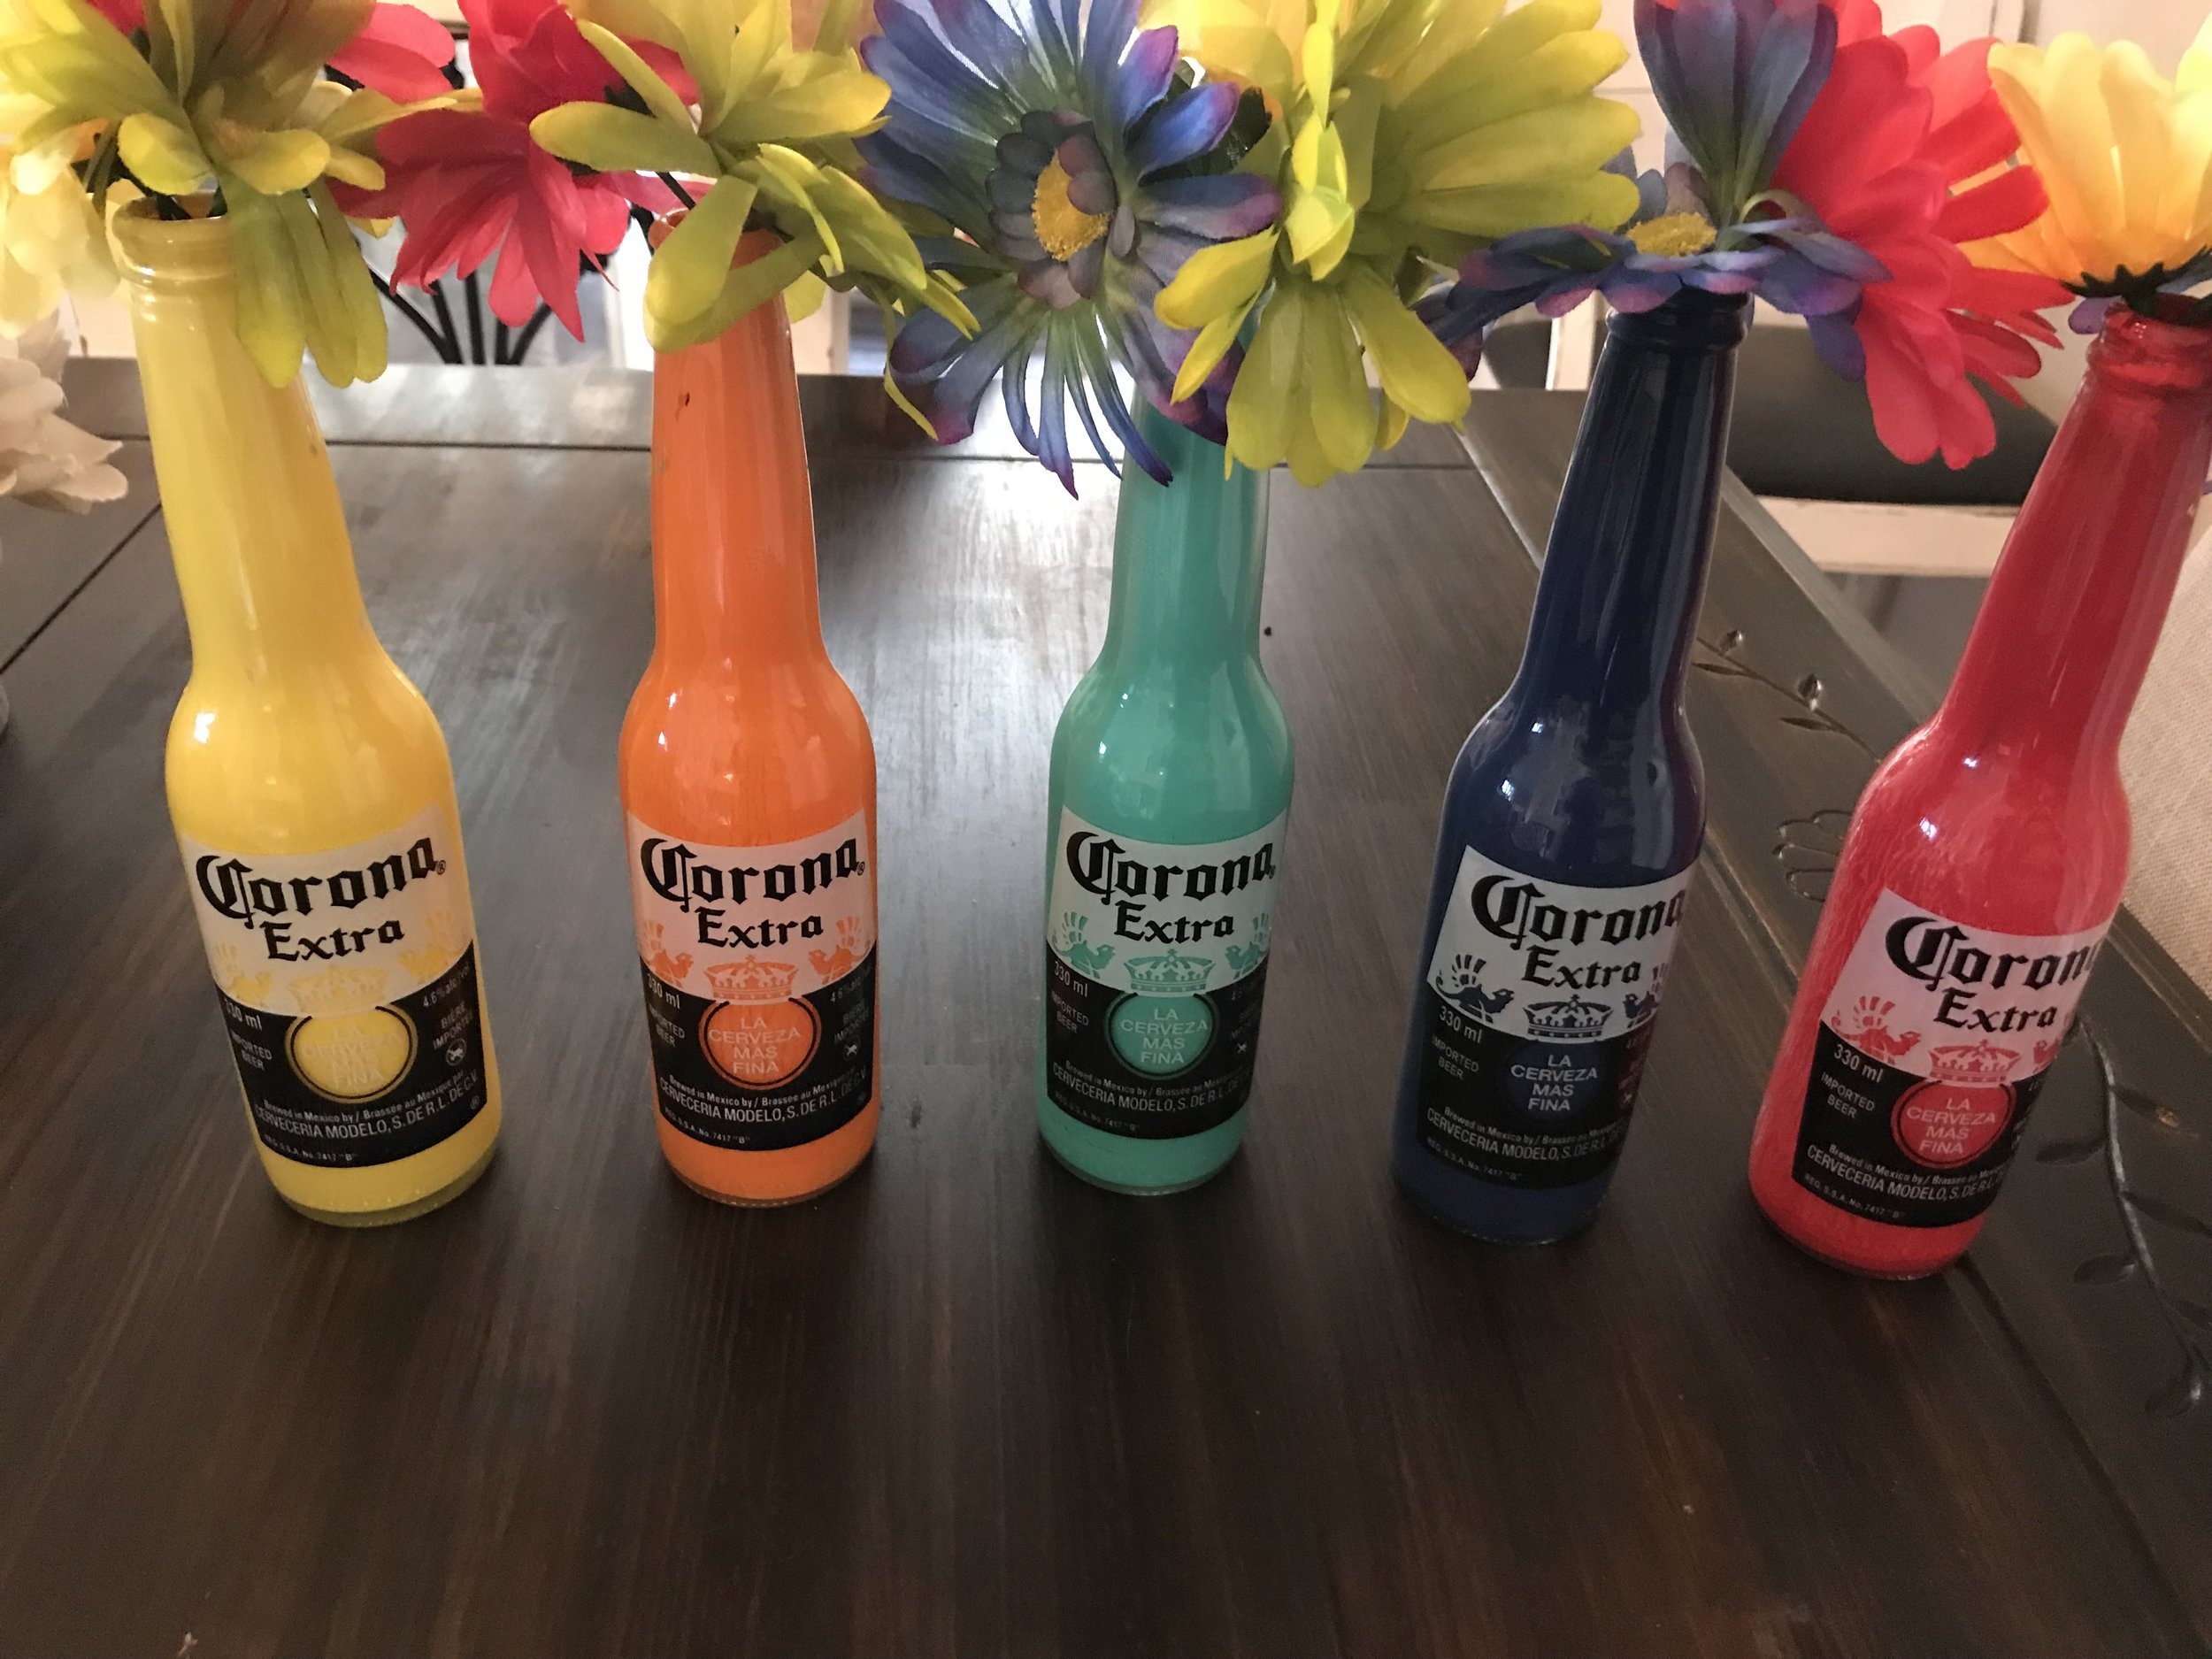 I poured acrylic paint into the bottles and rolled them around until coated with the paint. Easy peasy table decor that's perfect for a fiesta theme!